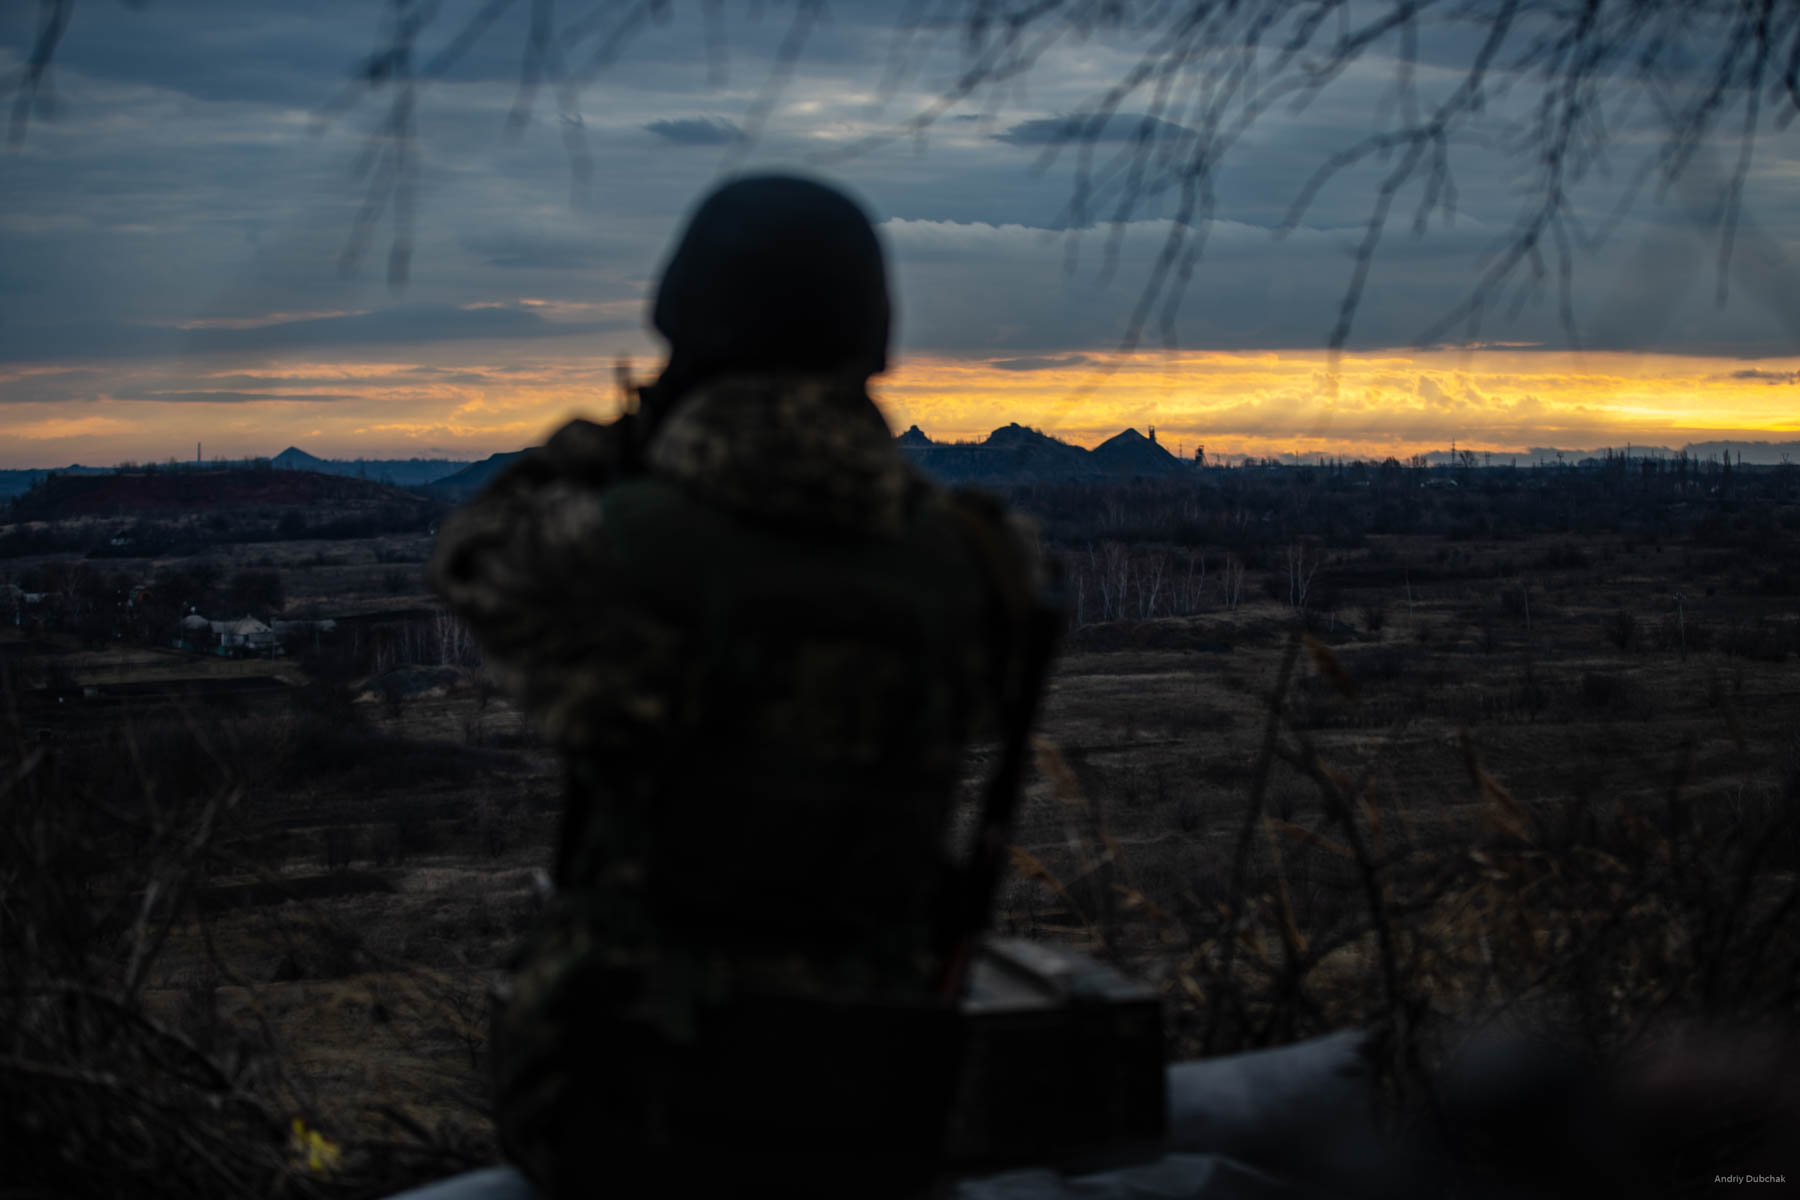 """The view on the gob piles, held by the Russian hybrid forces, from the position of the Ukrainian military, near the city of Zolote, which is in Lugansk region. One of the gob piles is located at a distance of 1.5 km, the other is 3 km away. The territory between the gob piles is a """"gray zone"""". Militants' sniper and reconnaissance groups come there. District of Popasnoy, December 2017"""